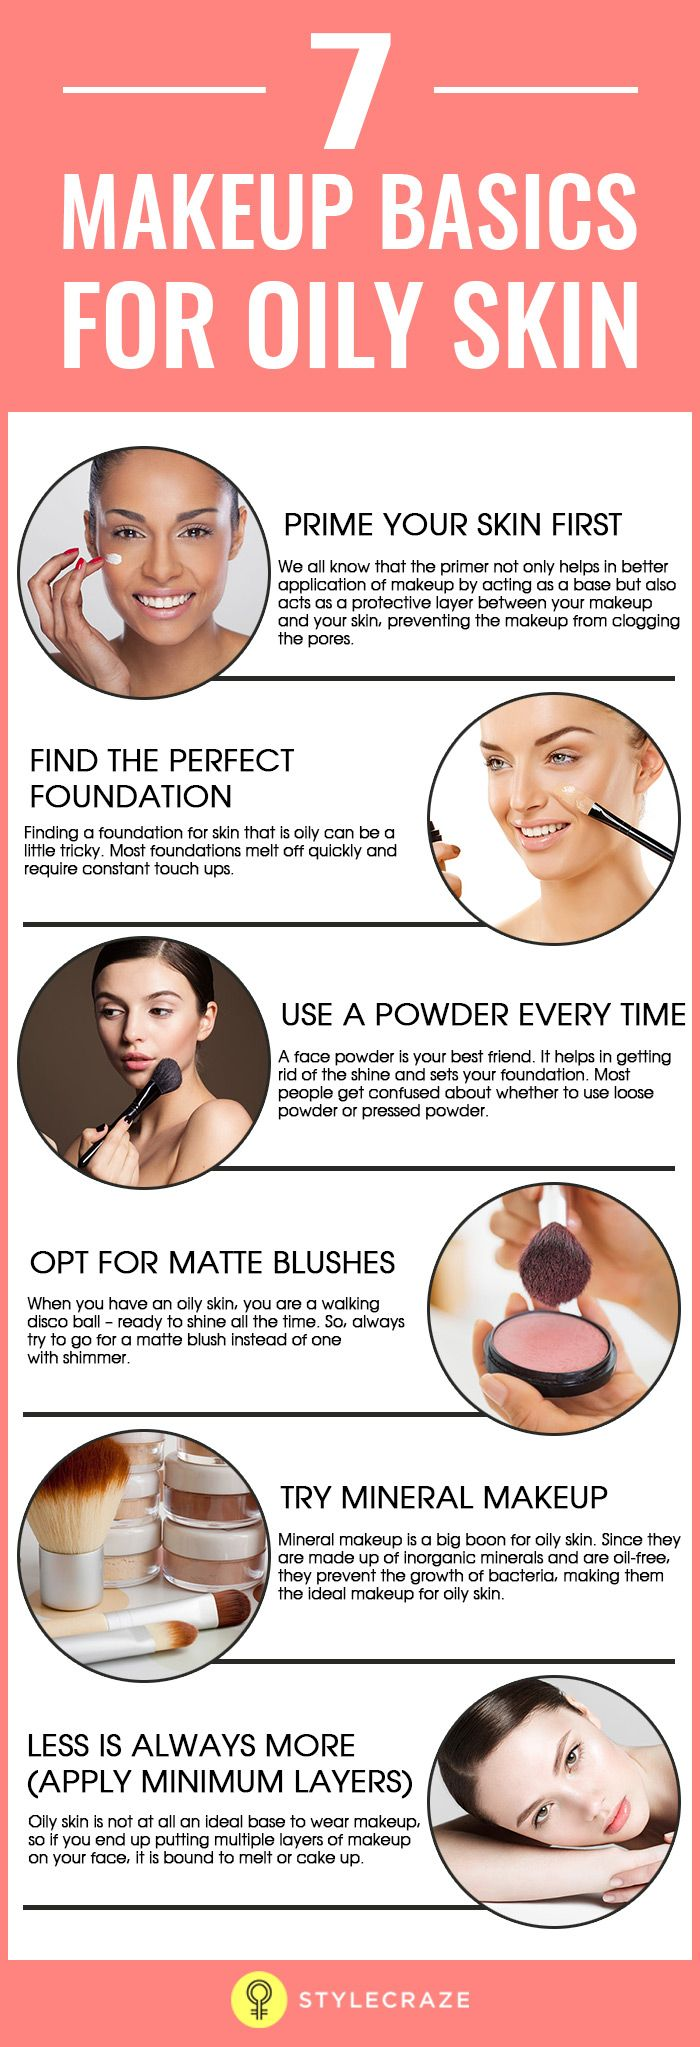 Most people with oily skin face a lot of problems when it comes to makeup. The makeup fades and melts off easily, oxidizes too soon, clogs pores, and causes a number of other skin problems. Fortunately, now we have makeup for oily skin that not only prevents the shine but also helps in controlling oil.